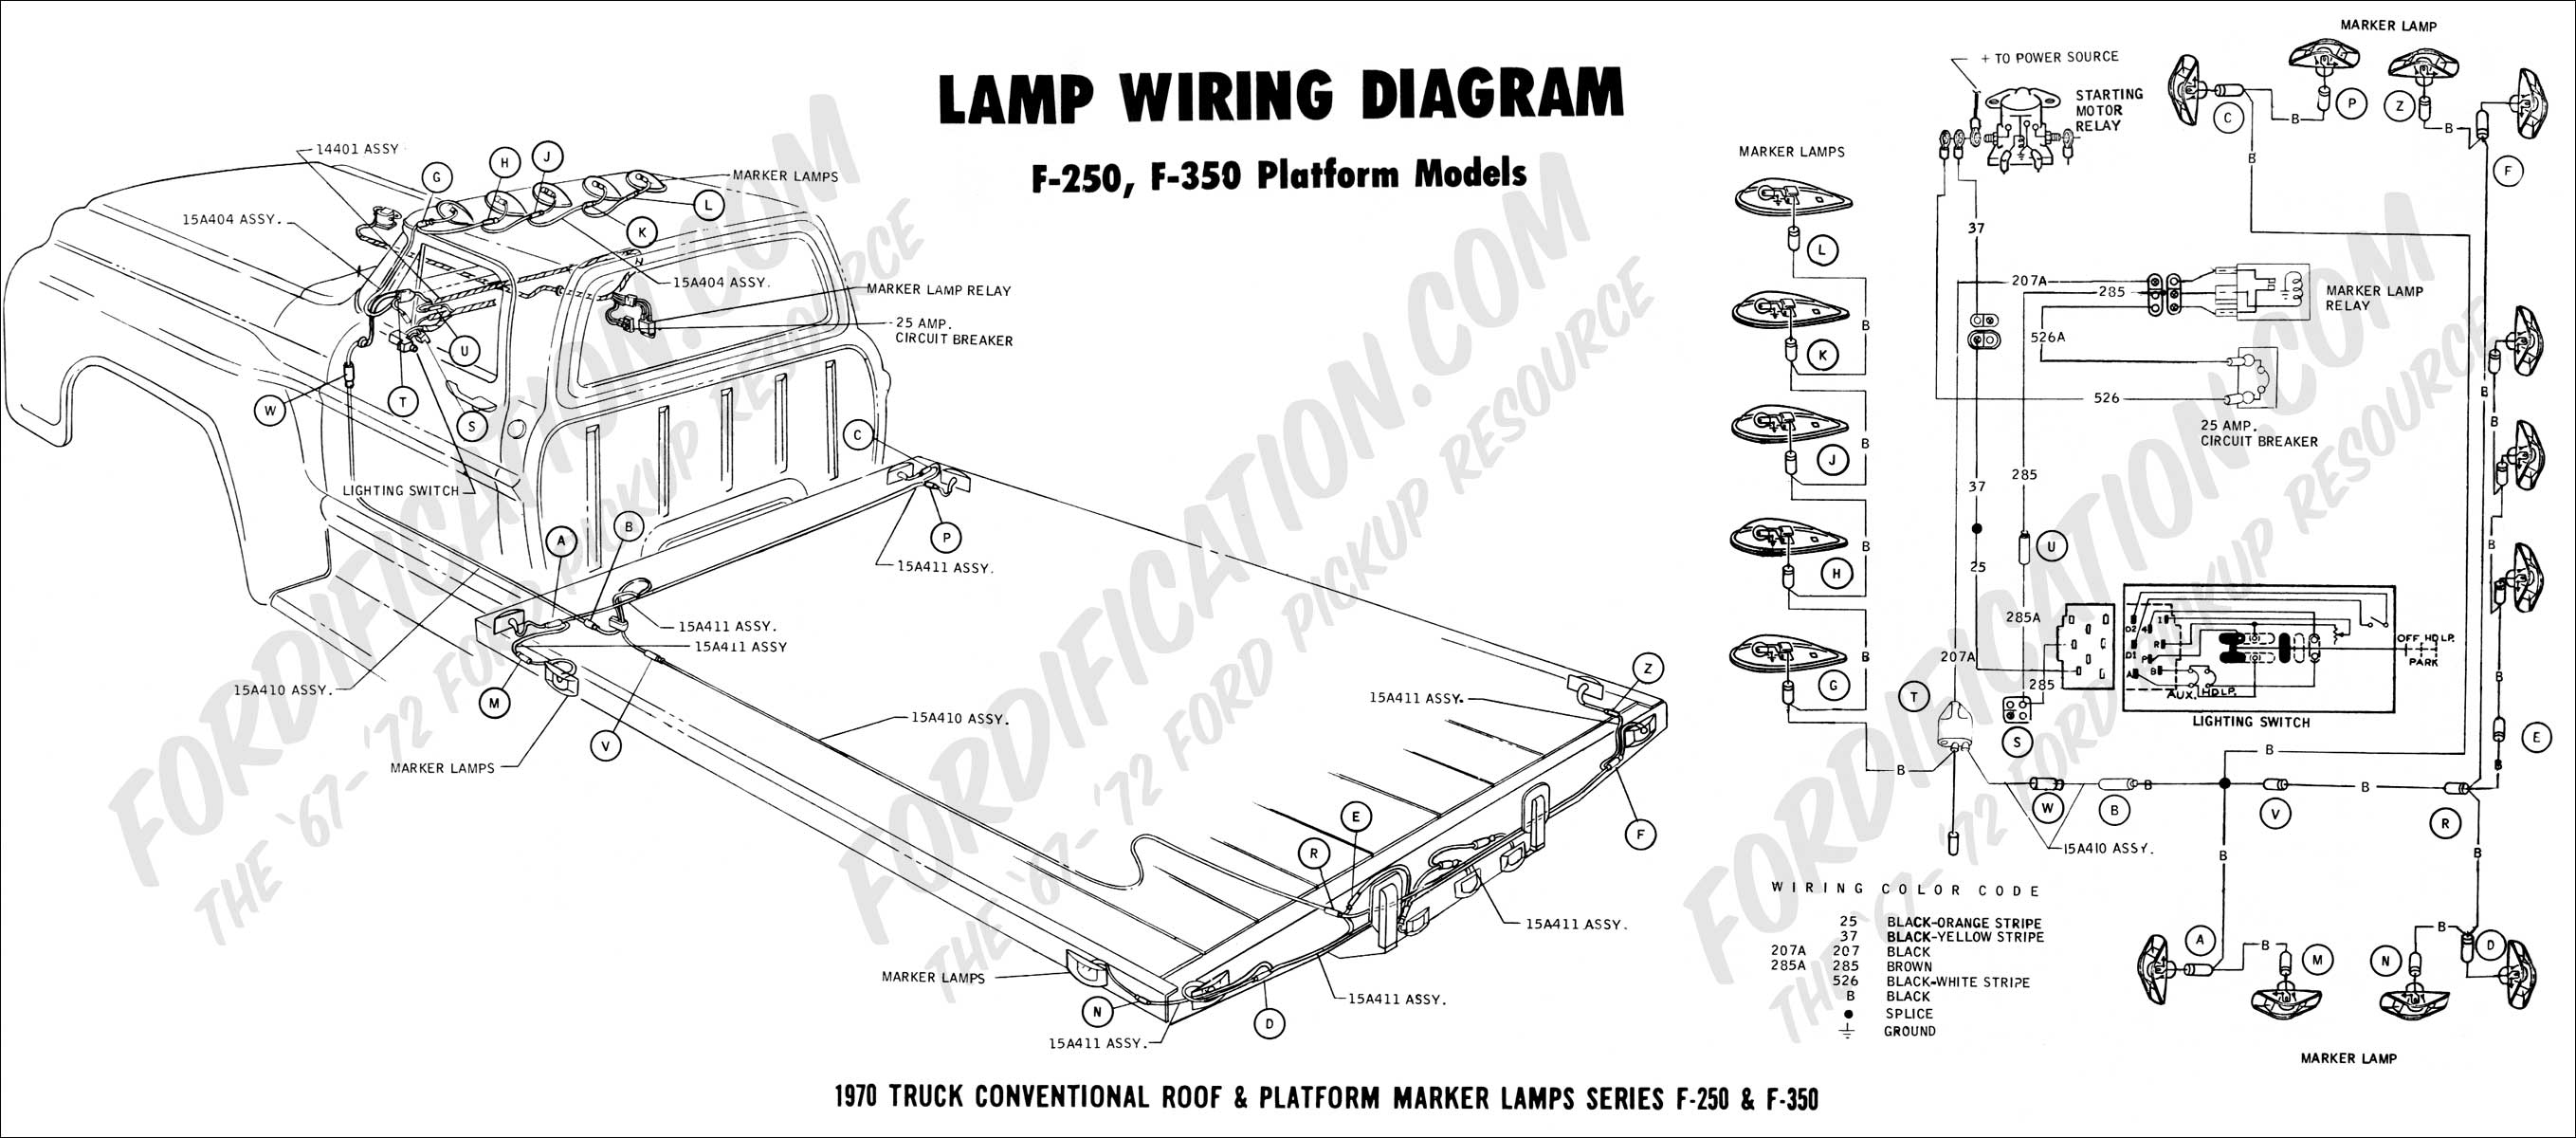 1966 ford f 250 wiring diagram ford truck technical drawings and schematics section h wiring 1970 f 250 f 350 power pak